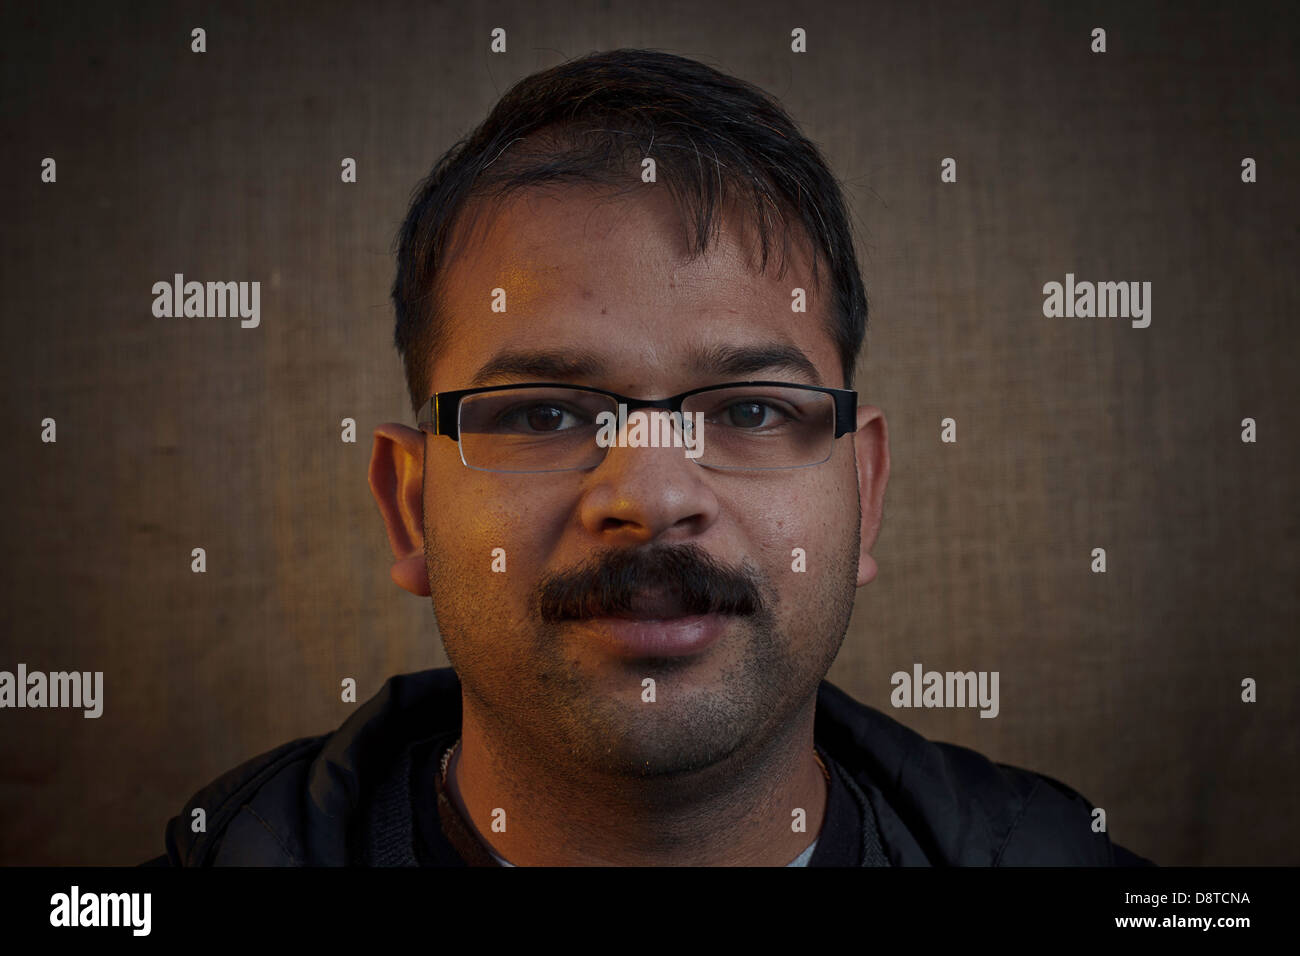 Men of Movember, portraits of Men who had grown a moustache for charity during the month of November 2012. - Stock Image